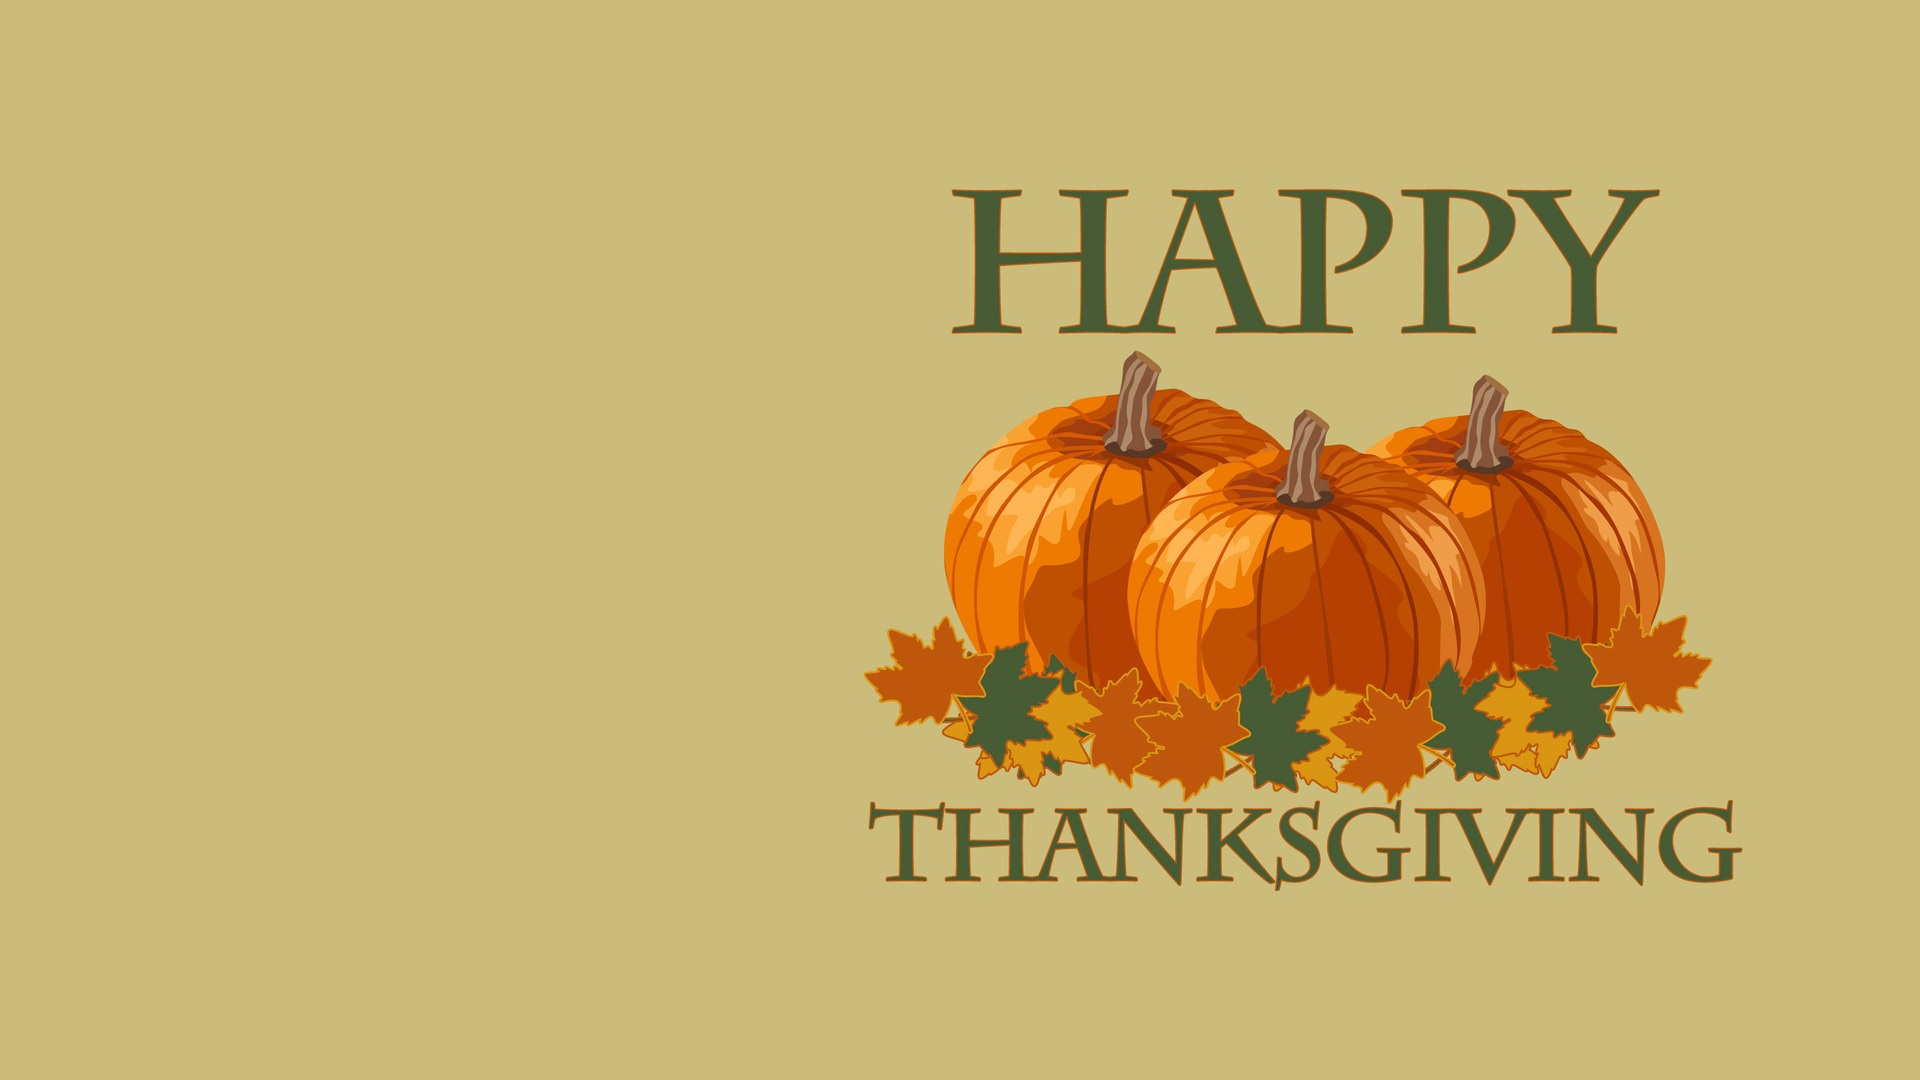 Happy thanksgiving day images wallpapers pictures 2017 - Thanksgiving day wallpaper 3d ...